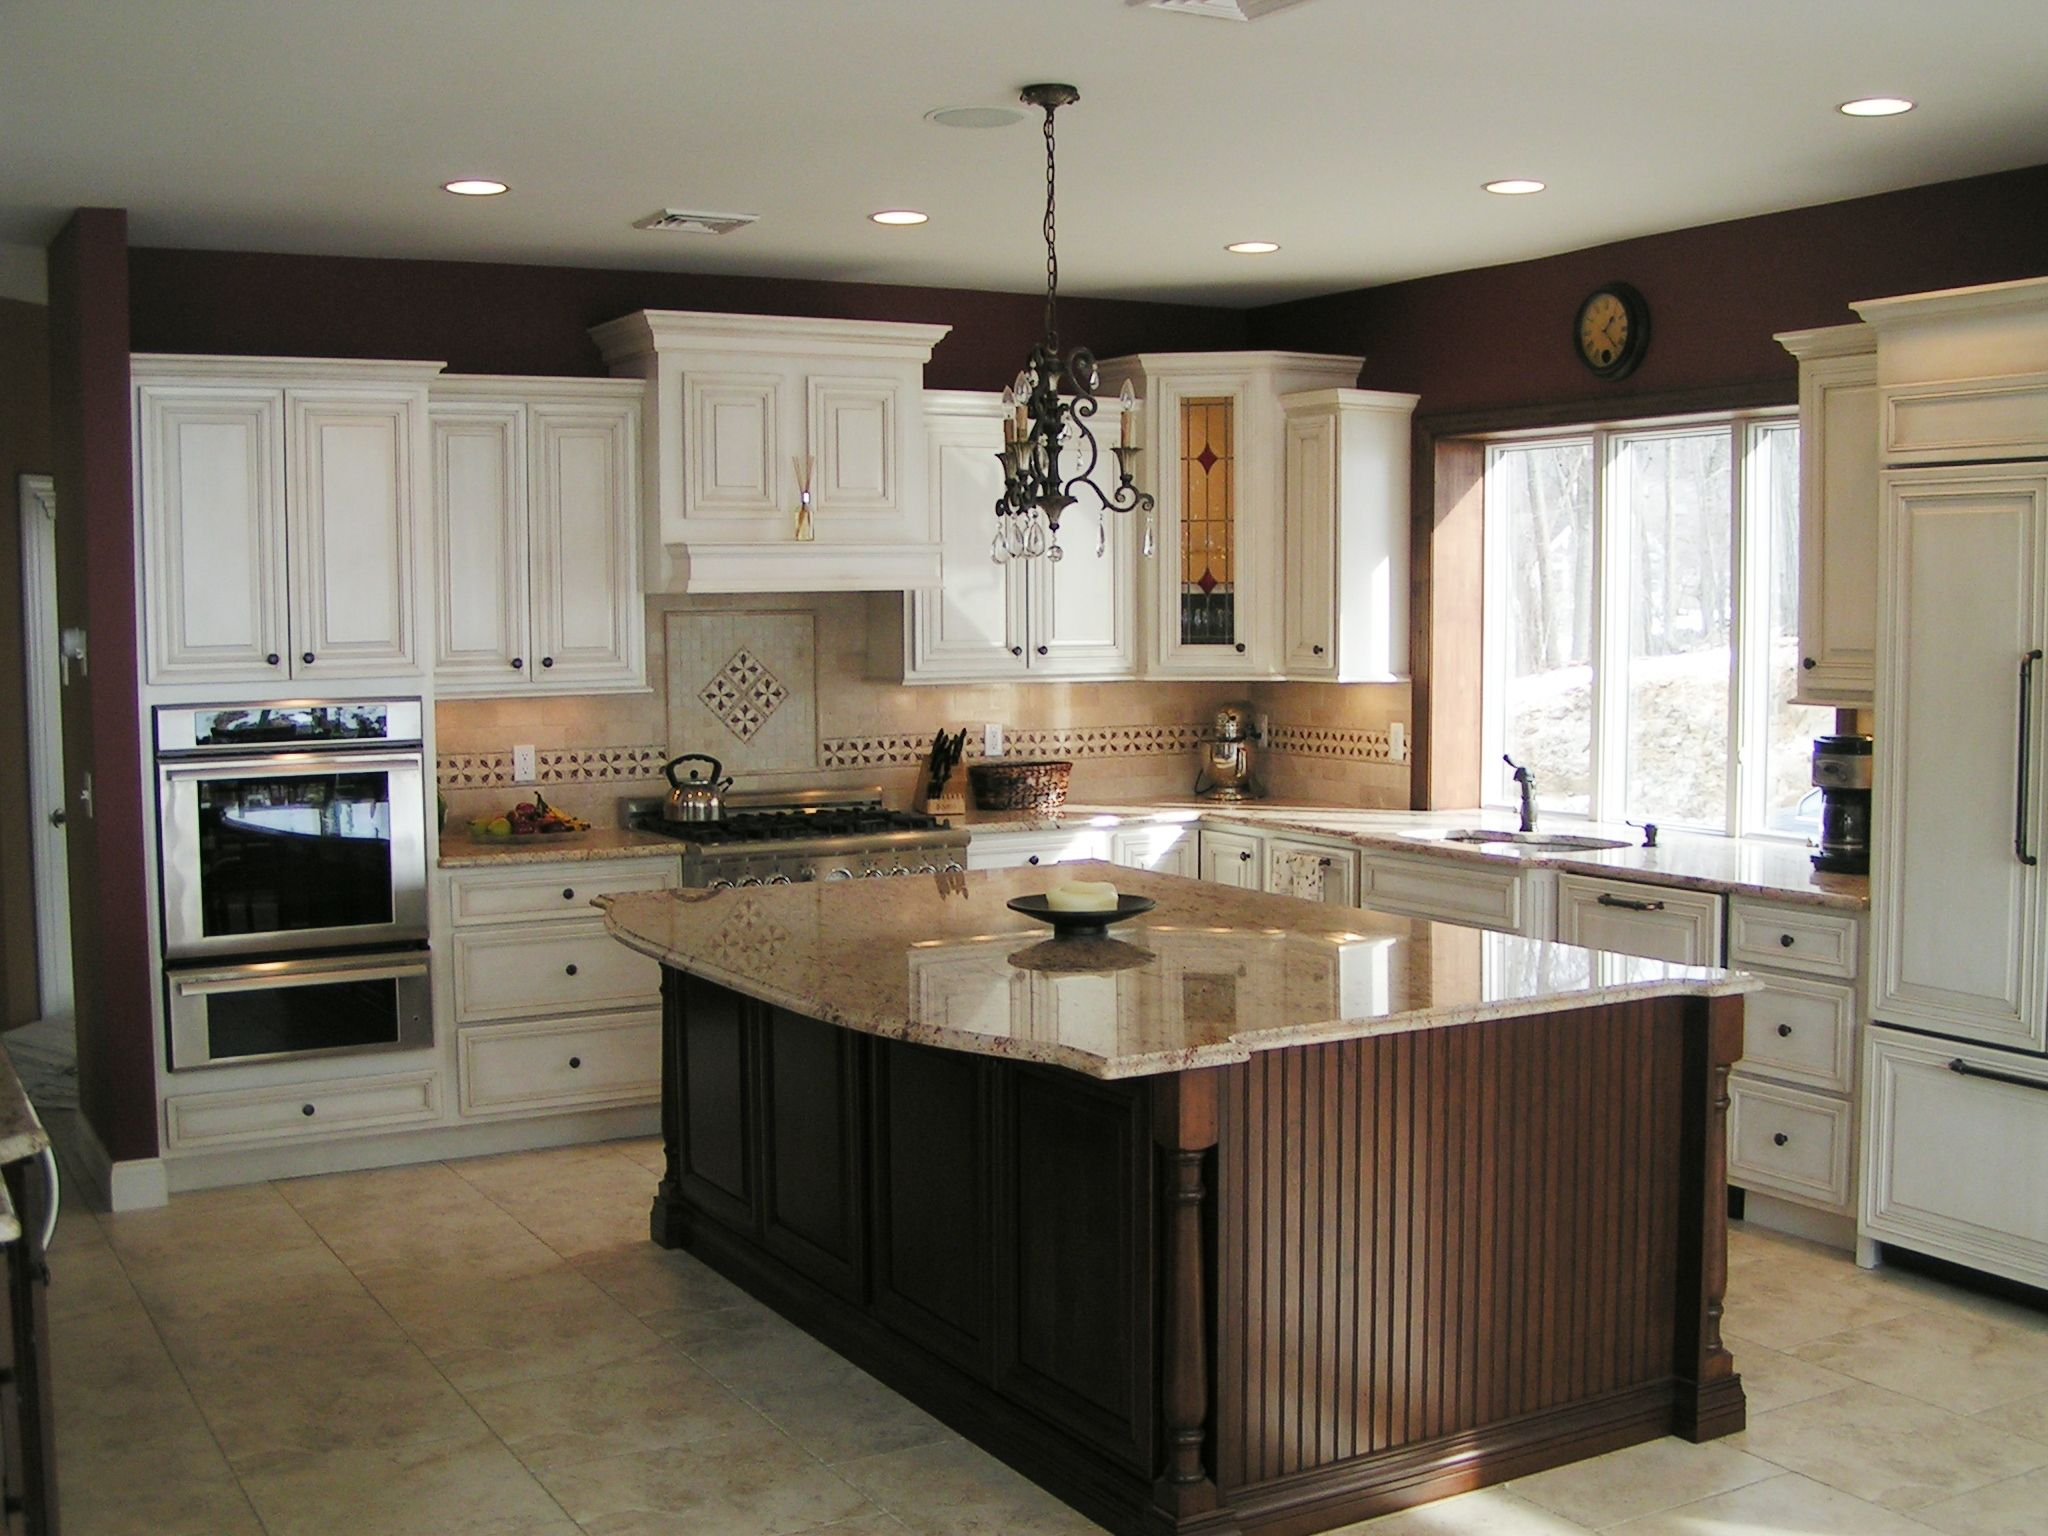 Full kitchen wood species cabinets maple and island for Kitchen cabinet wood types